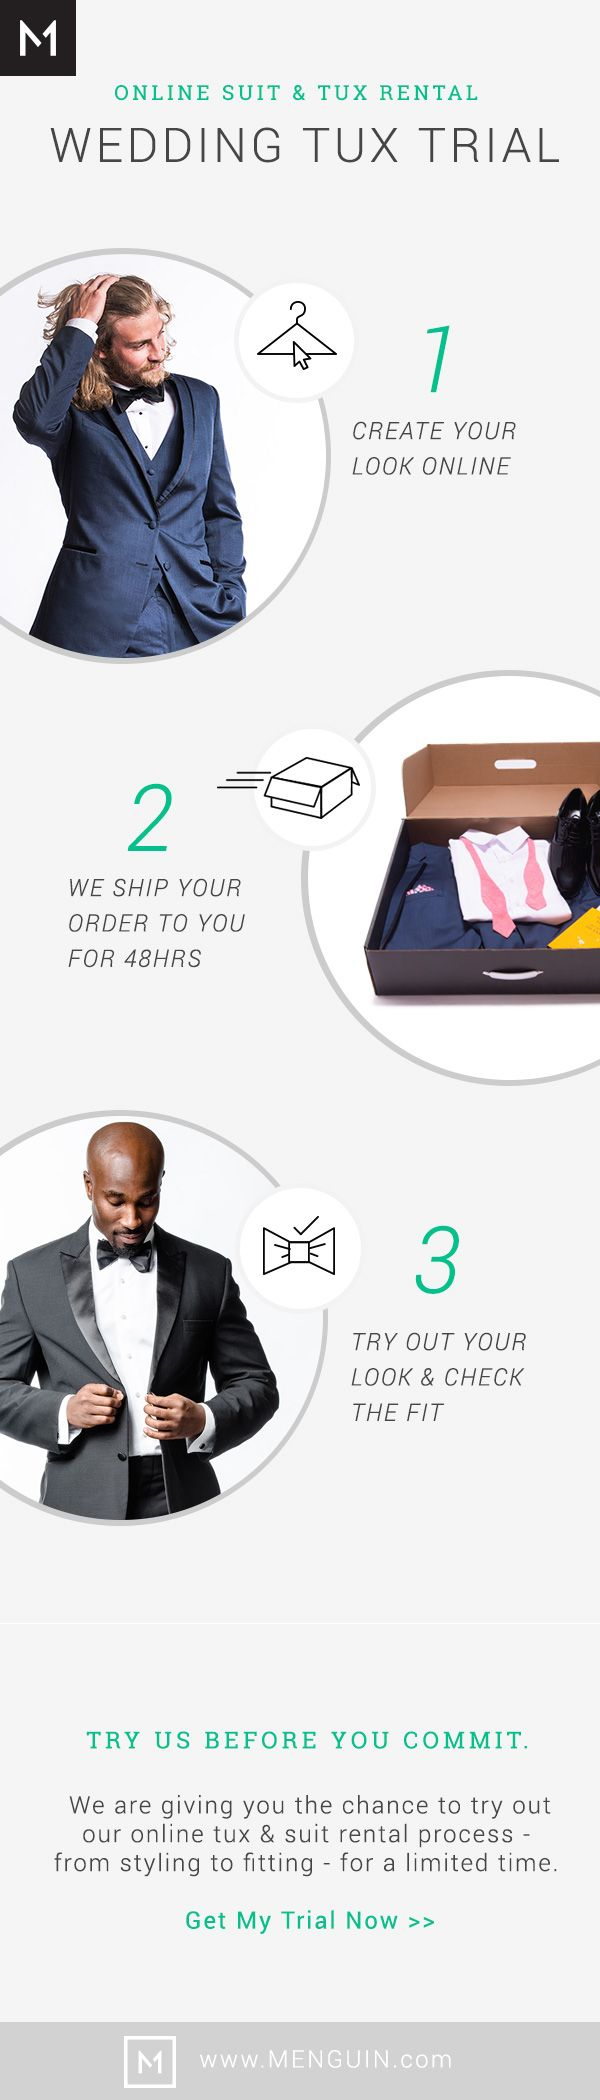 Renting a tuxedo for your wedding has never been easier! Choose Your Tux Style & Colors. Invite Your Wedding Party. We Will Deliver Right To Your Door - With 24/7 Express Replacements| Try Us Out Before Your Wedding| Save Time | Save Money | Save Penguins | Menguin.com